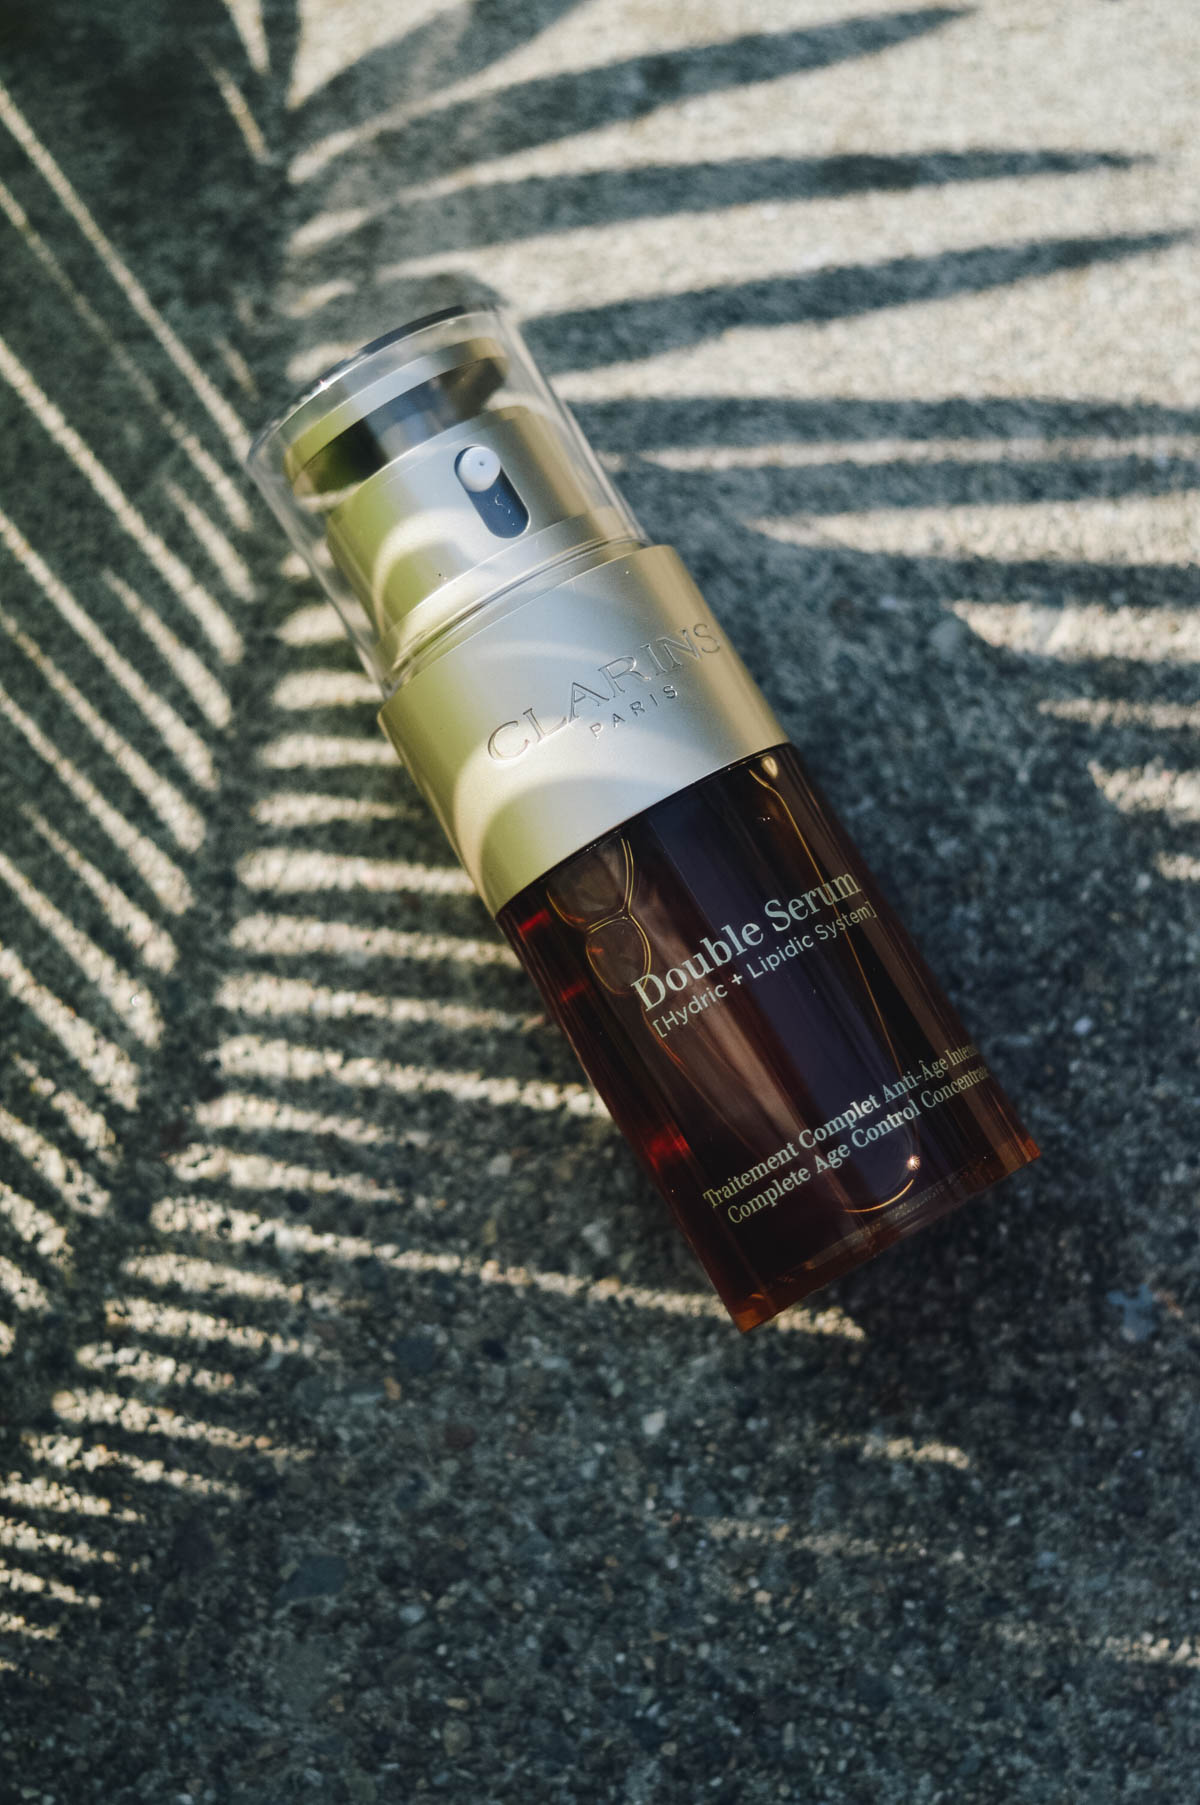 CLARINS Double Serum Complete Age Control Concentrate Review via. www.birdieshoots.com